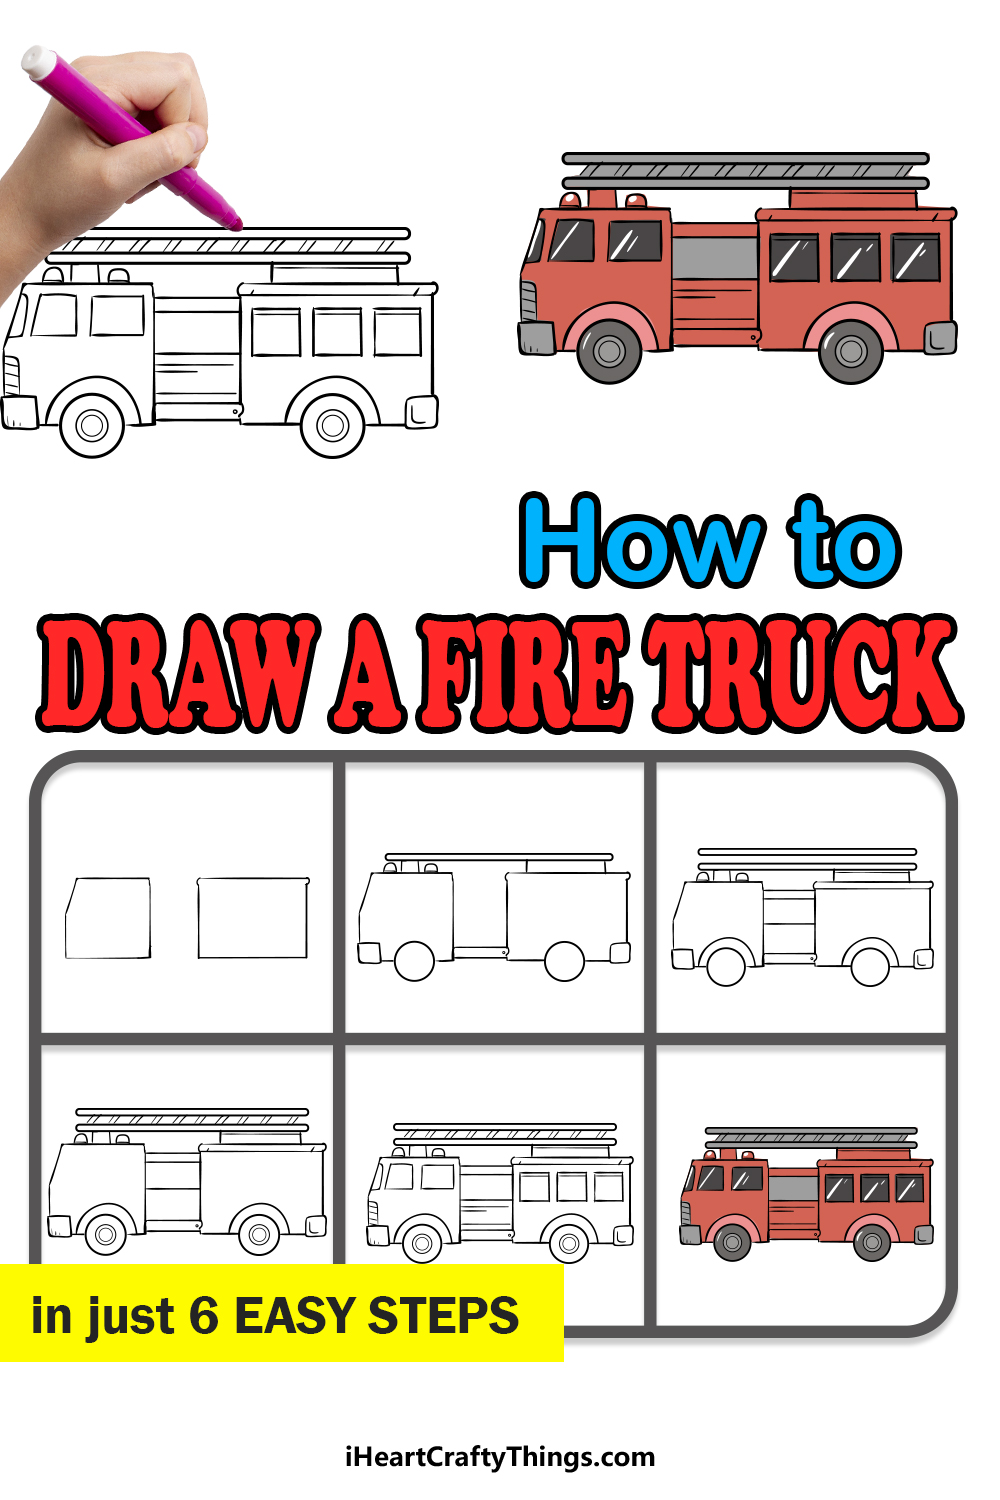 how to draw a fire truck in 6 easy steps